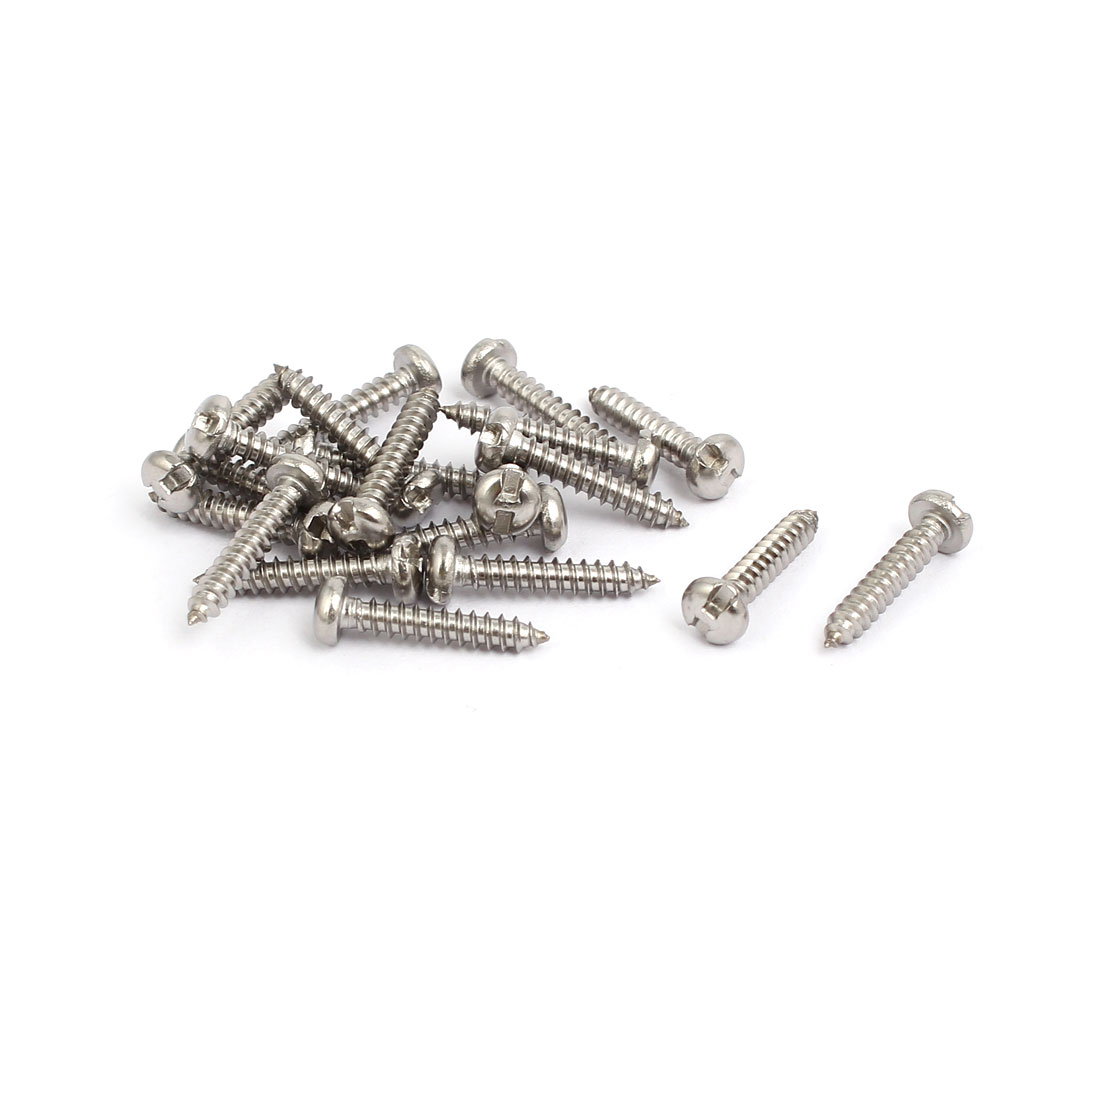 M2.9x16mm 304 Stainless Steel H-Type Pan Head Self Tapping Security Screw 20pcs